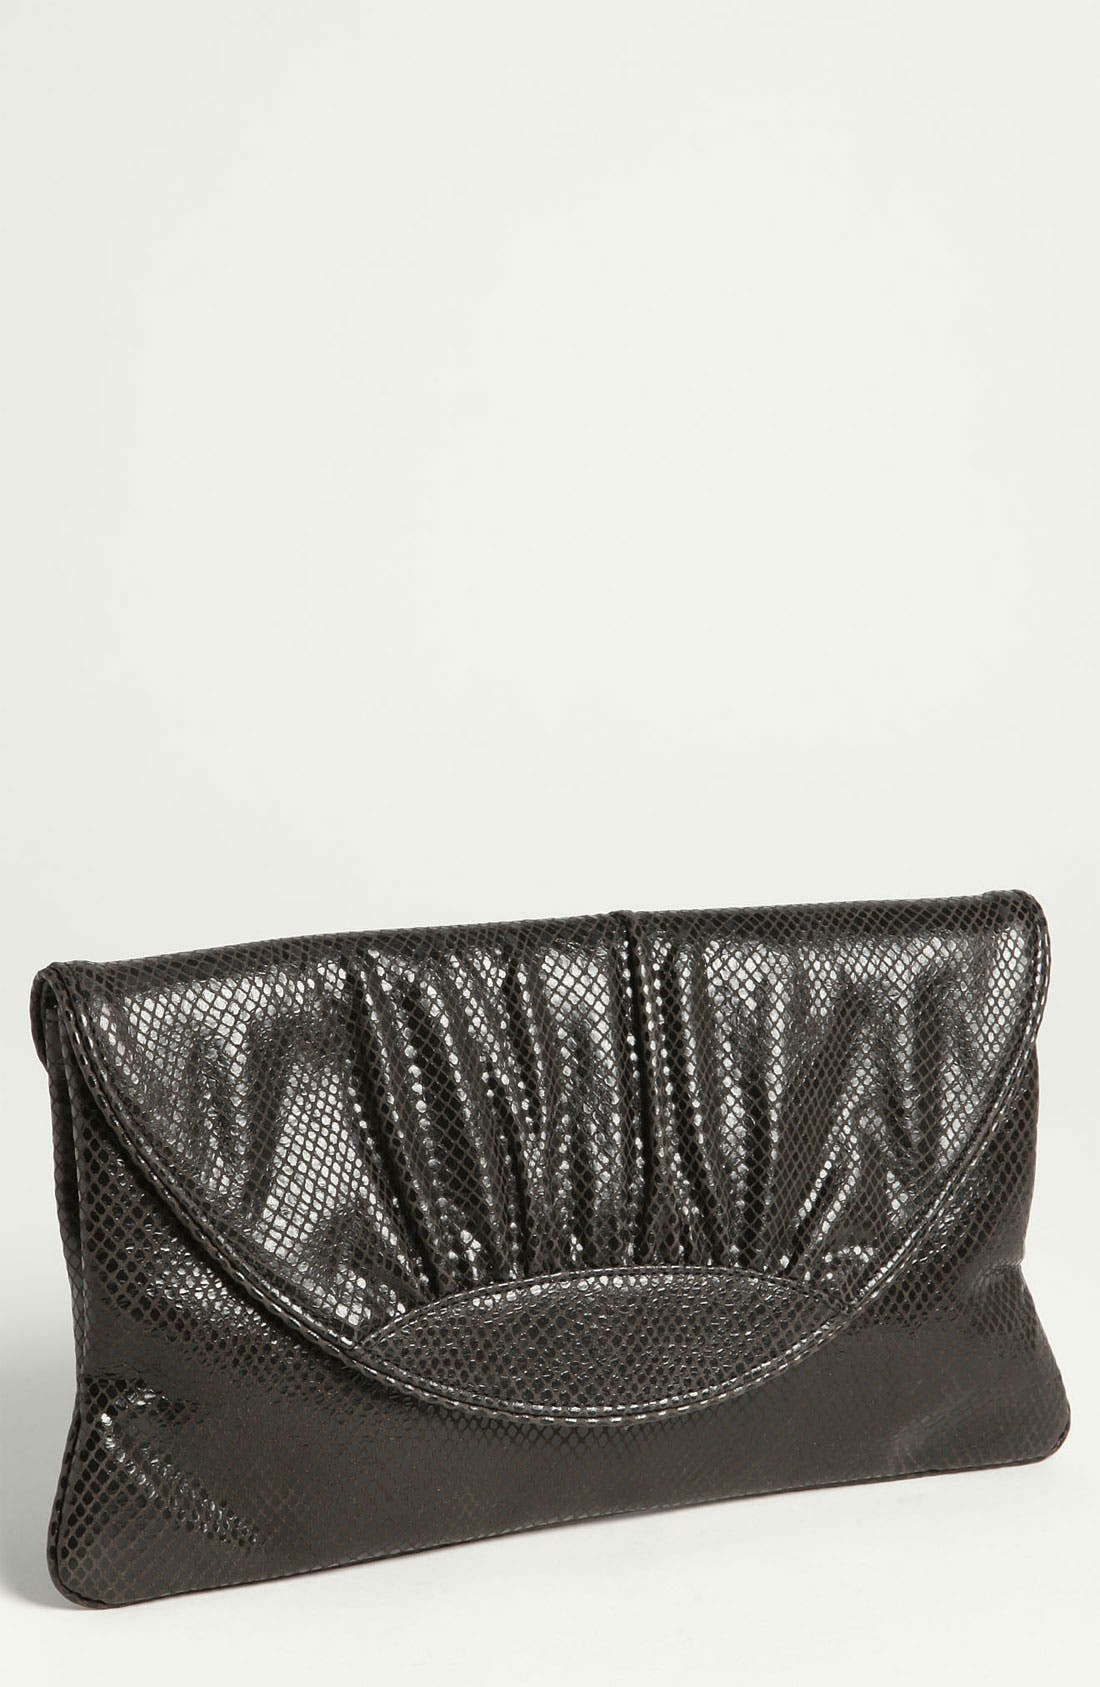 'Ava' Snake Embossed Clutch,                             Main thumbnail 1, color,